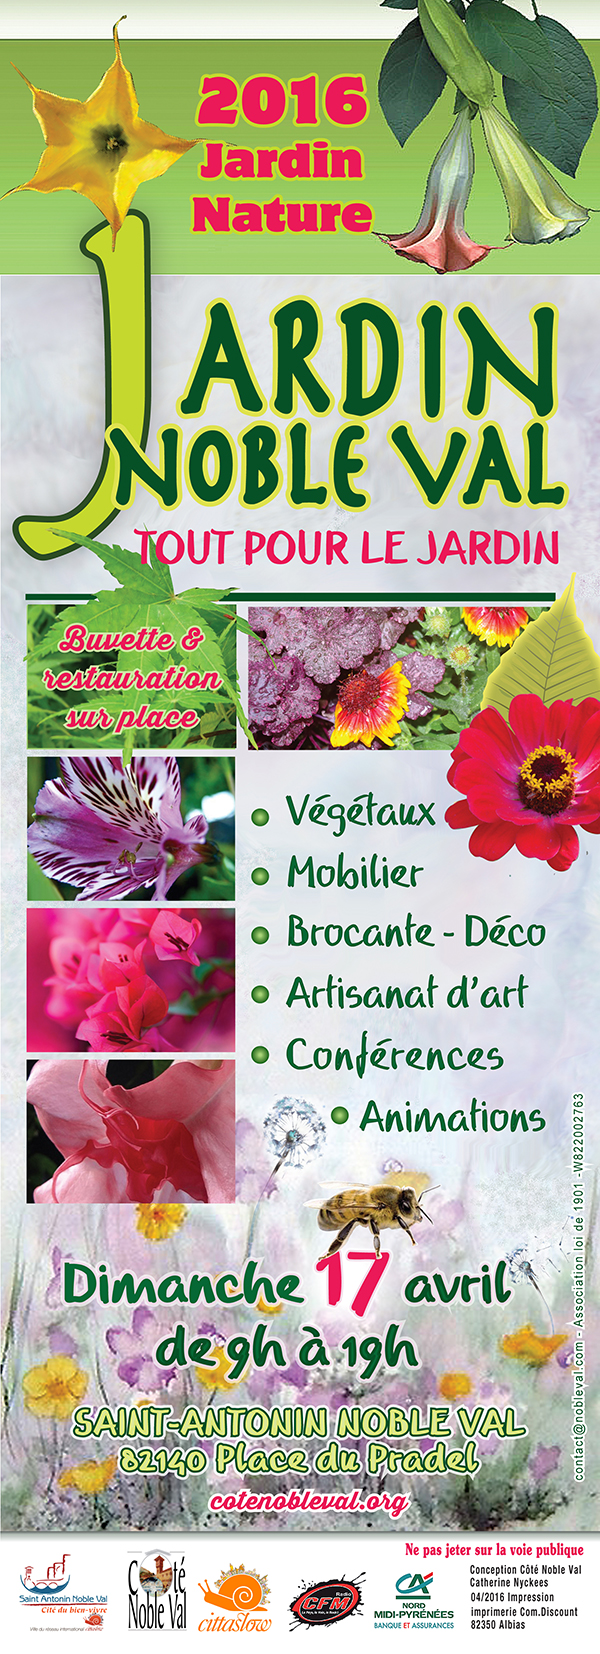 Jardin noble val saint antonin noble val 82 for Guia jardin noble 2016